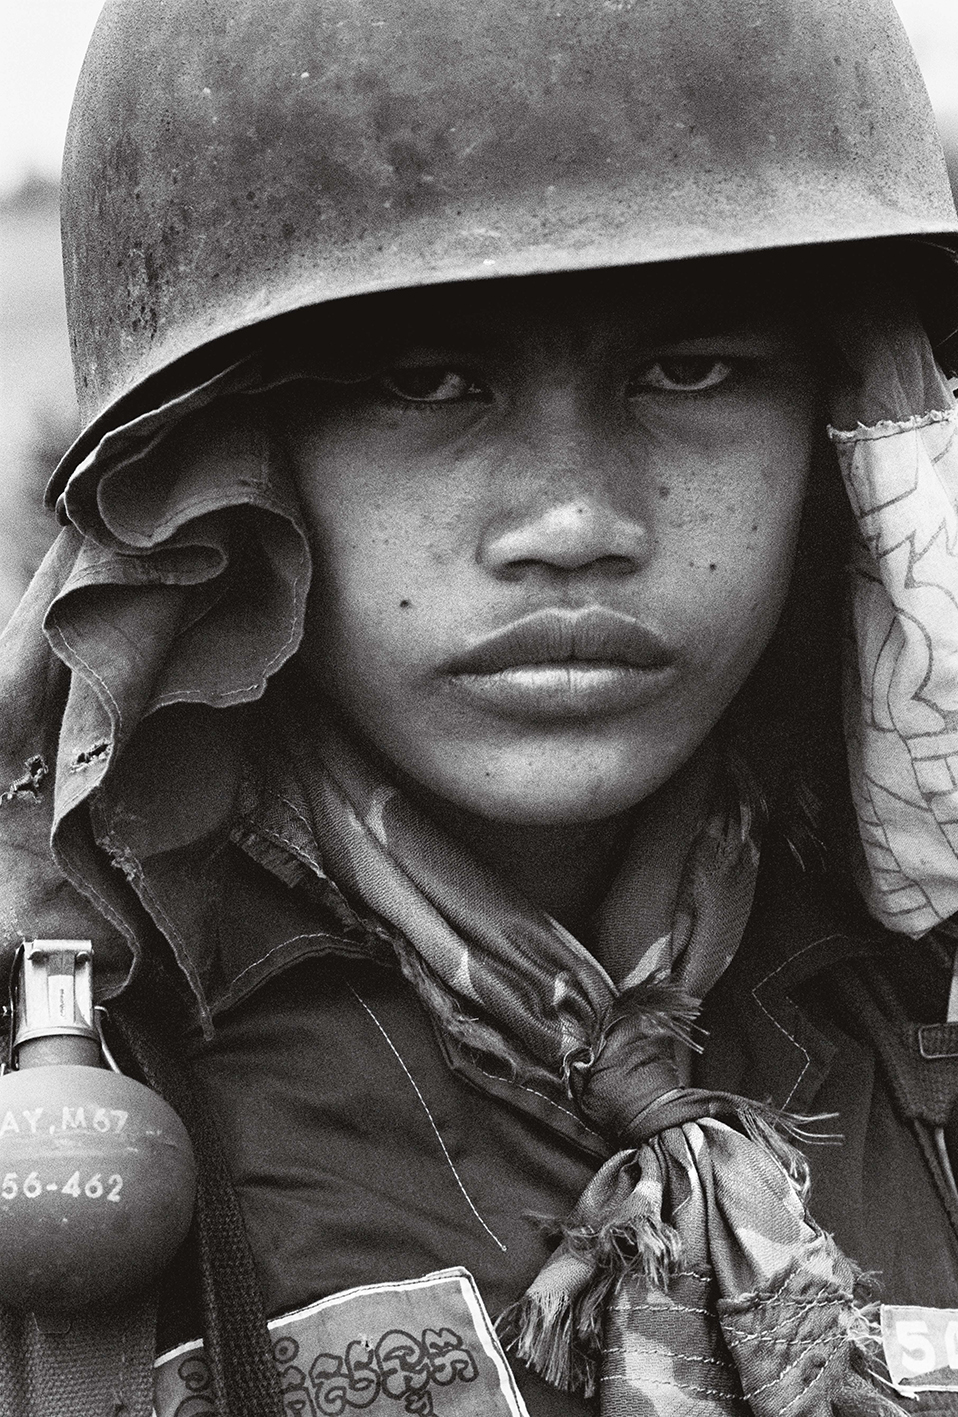 &#169Christine Spengler - Cambodge, 1974.